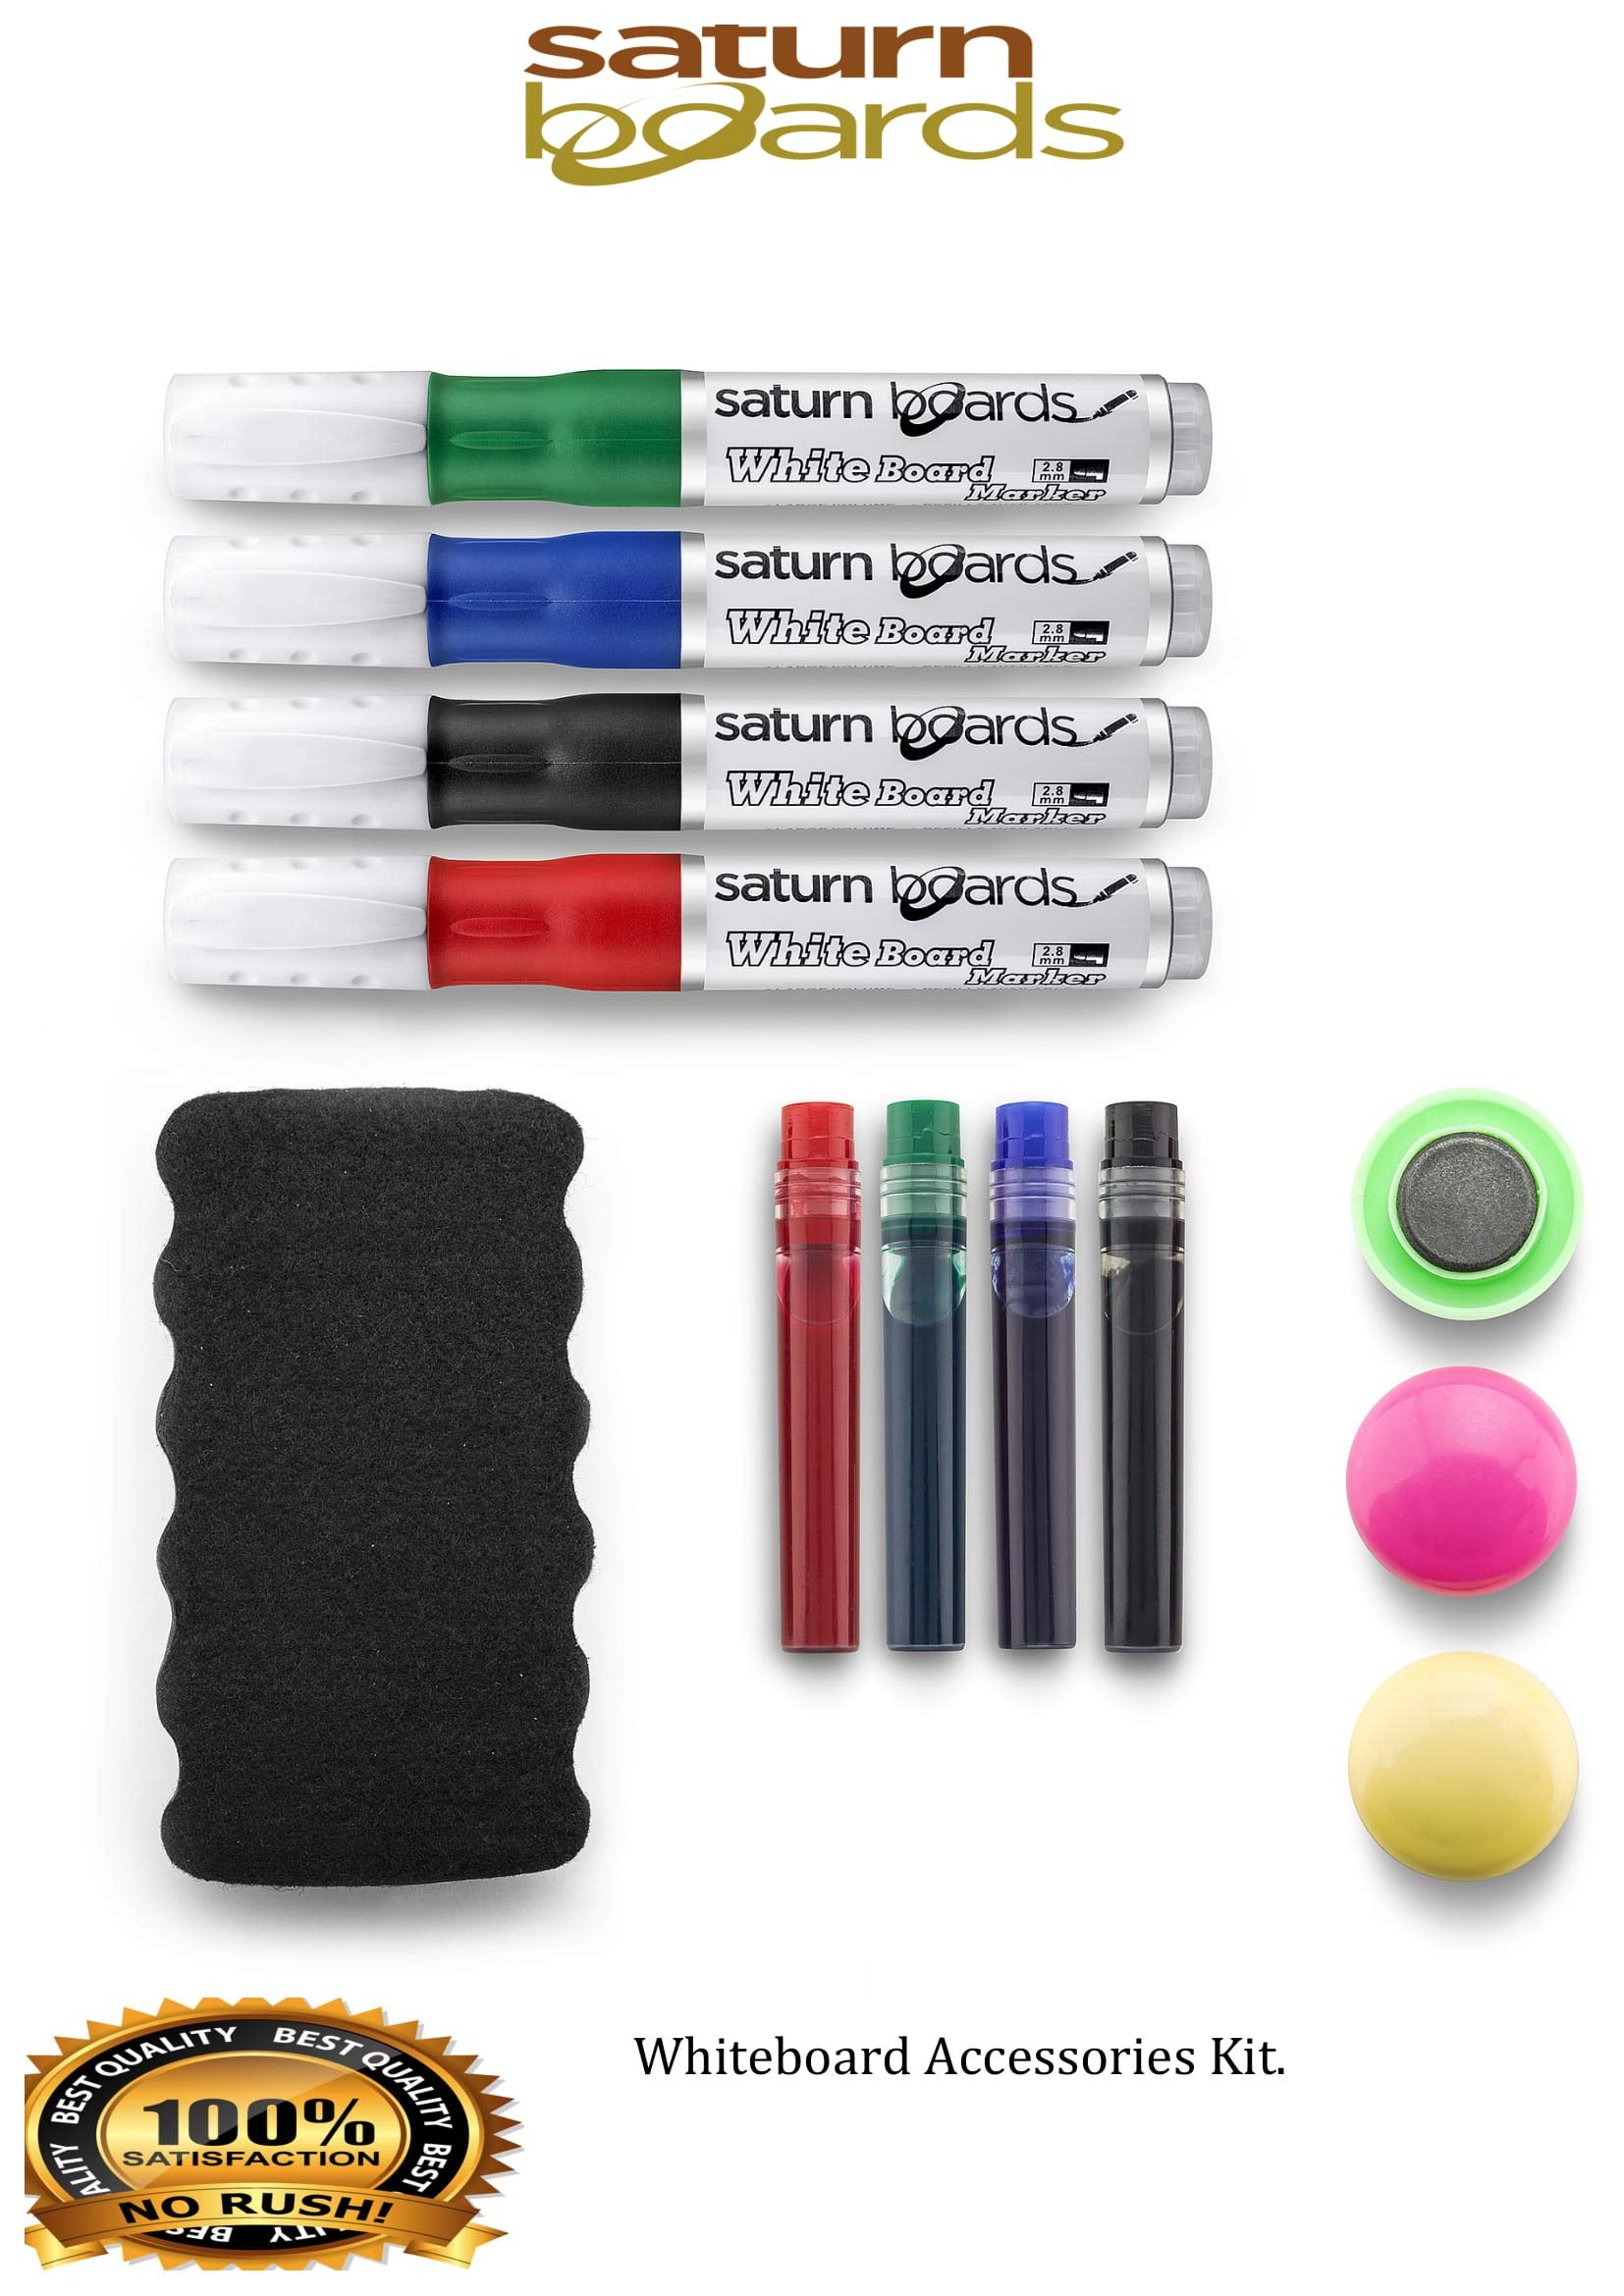 dry wipe black, red, green, blue non-permanent Be!Board B3002 Glass board Marker // pen for whiteboards and magnetic boards assorted colours set of 4 round tip 2-3 mm